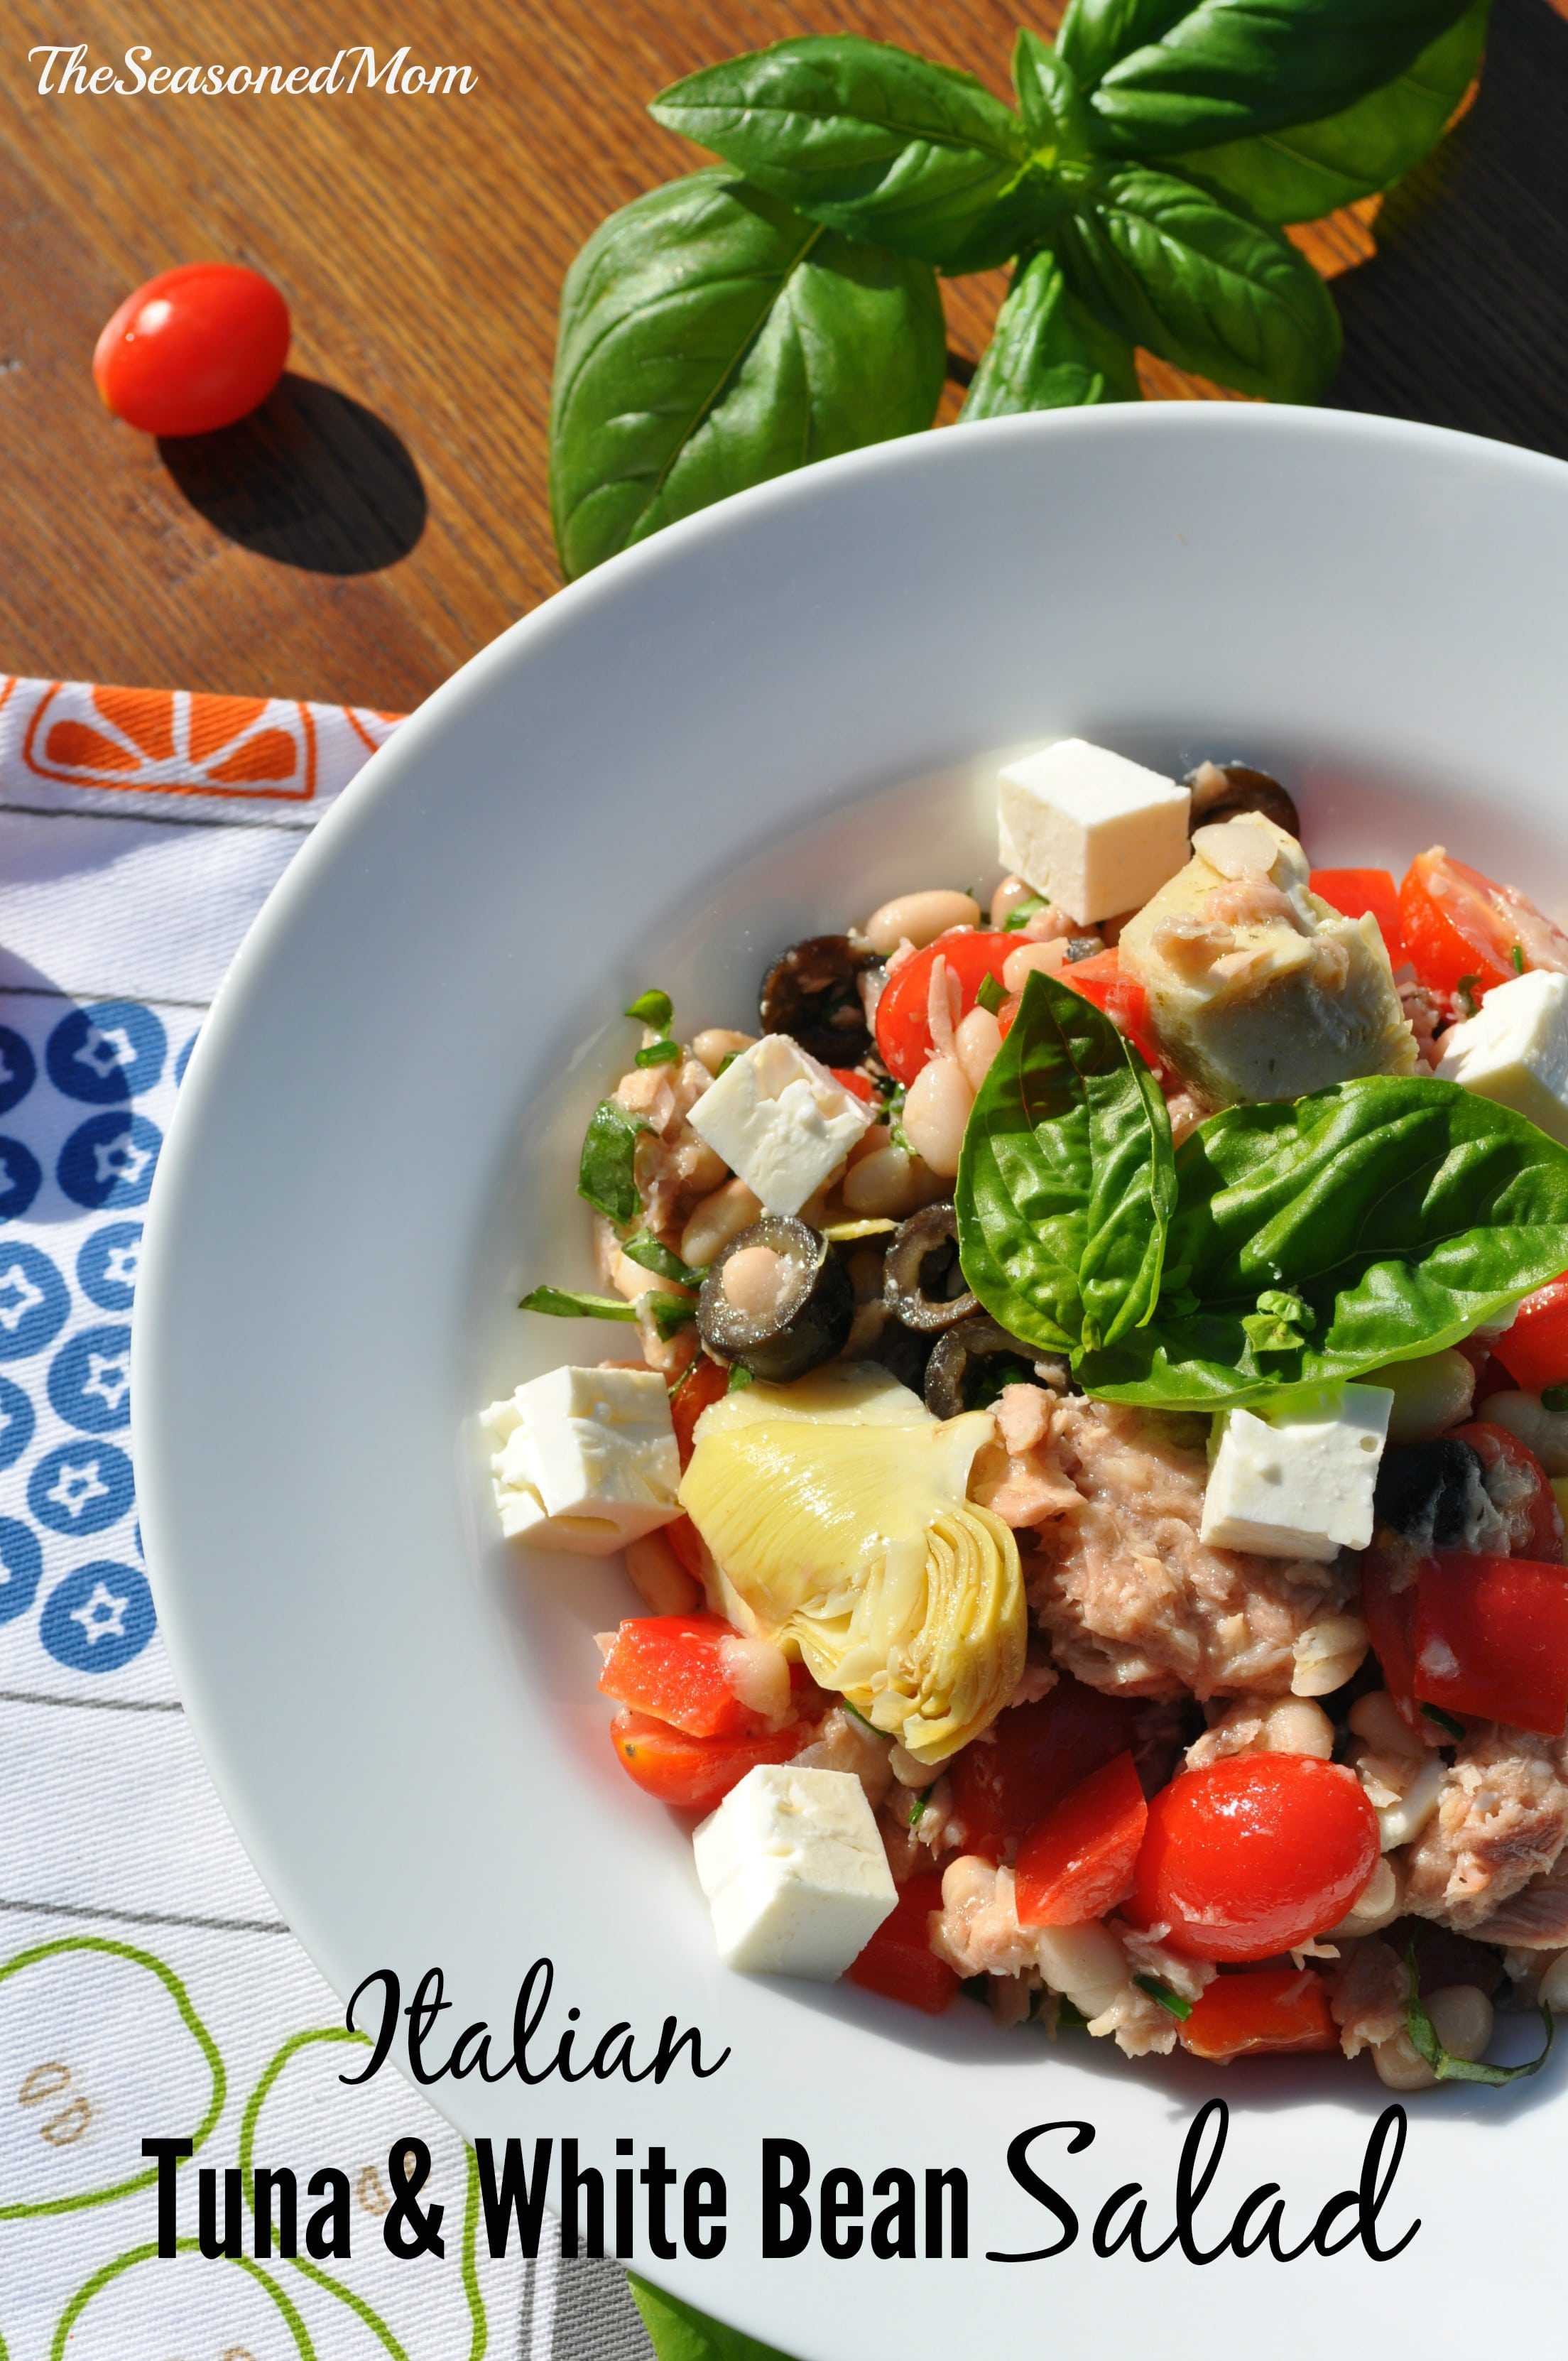 Italian Tuna and White Bean Salad - The Seasoned Mom